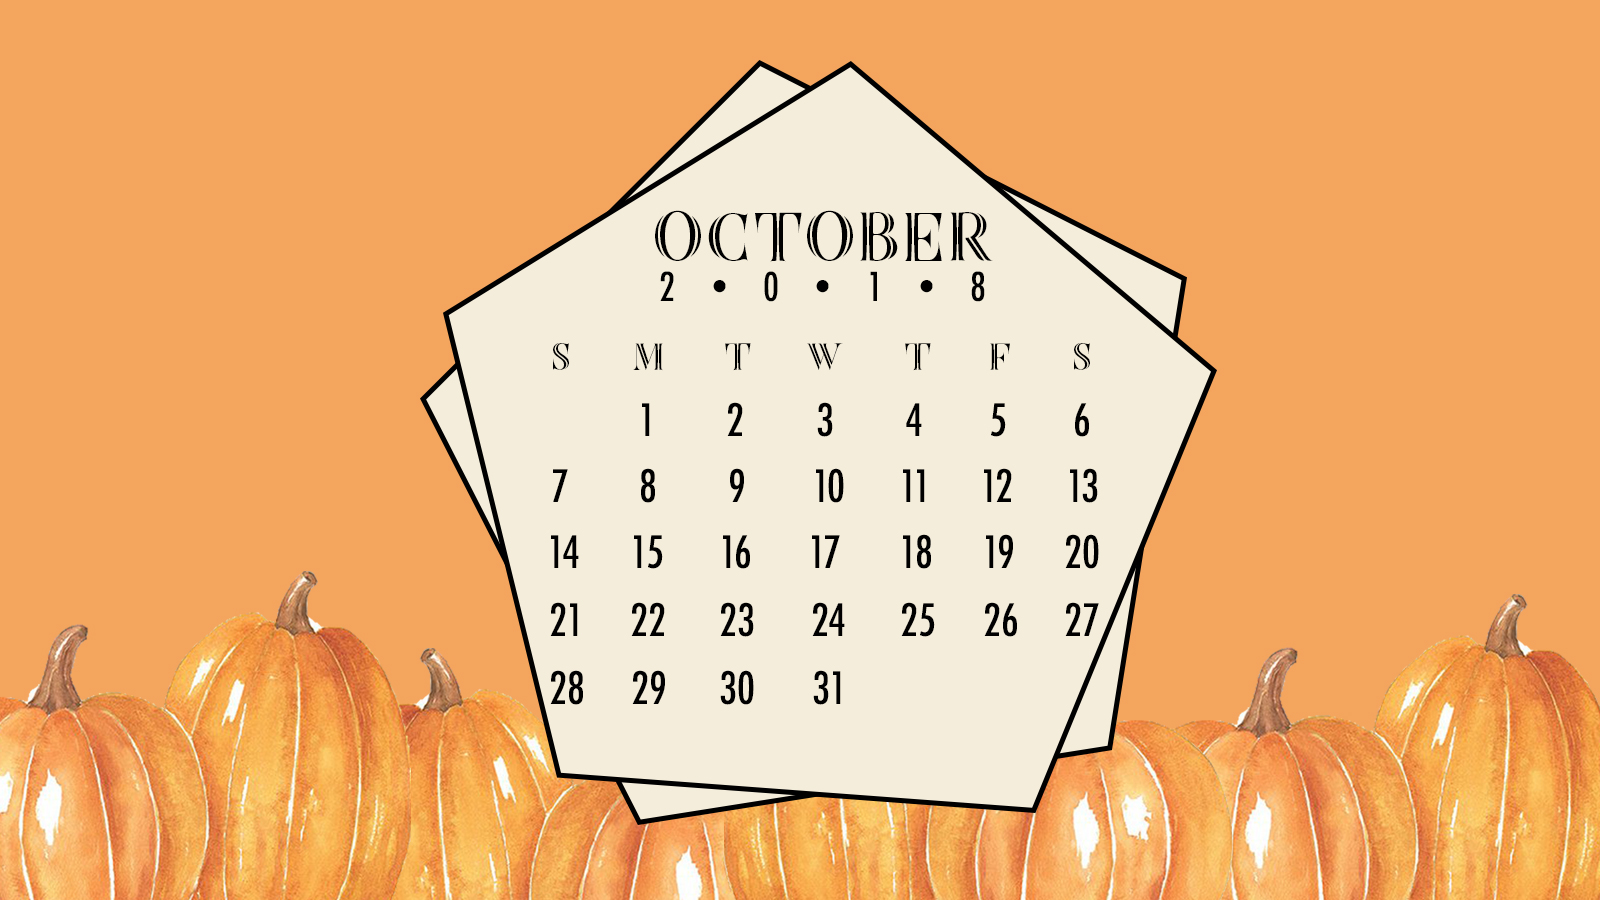 free desktop digital calendar - october 2018